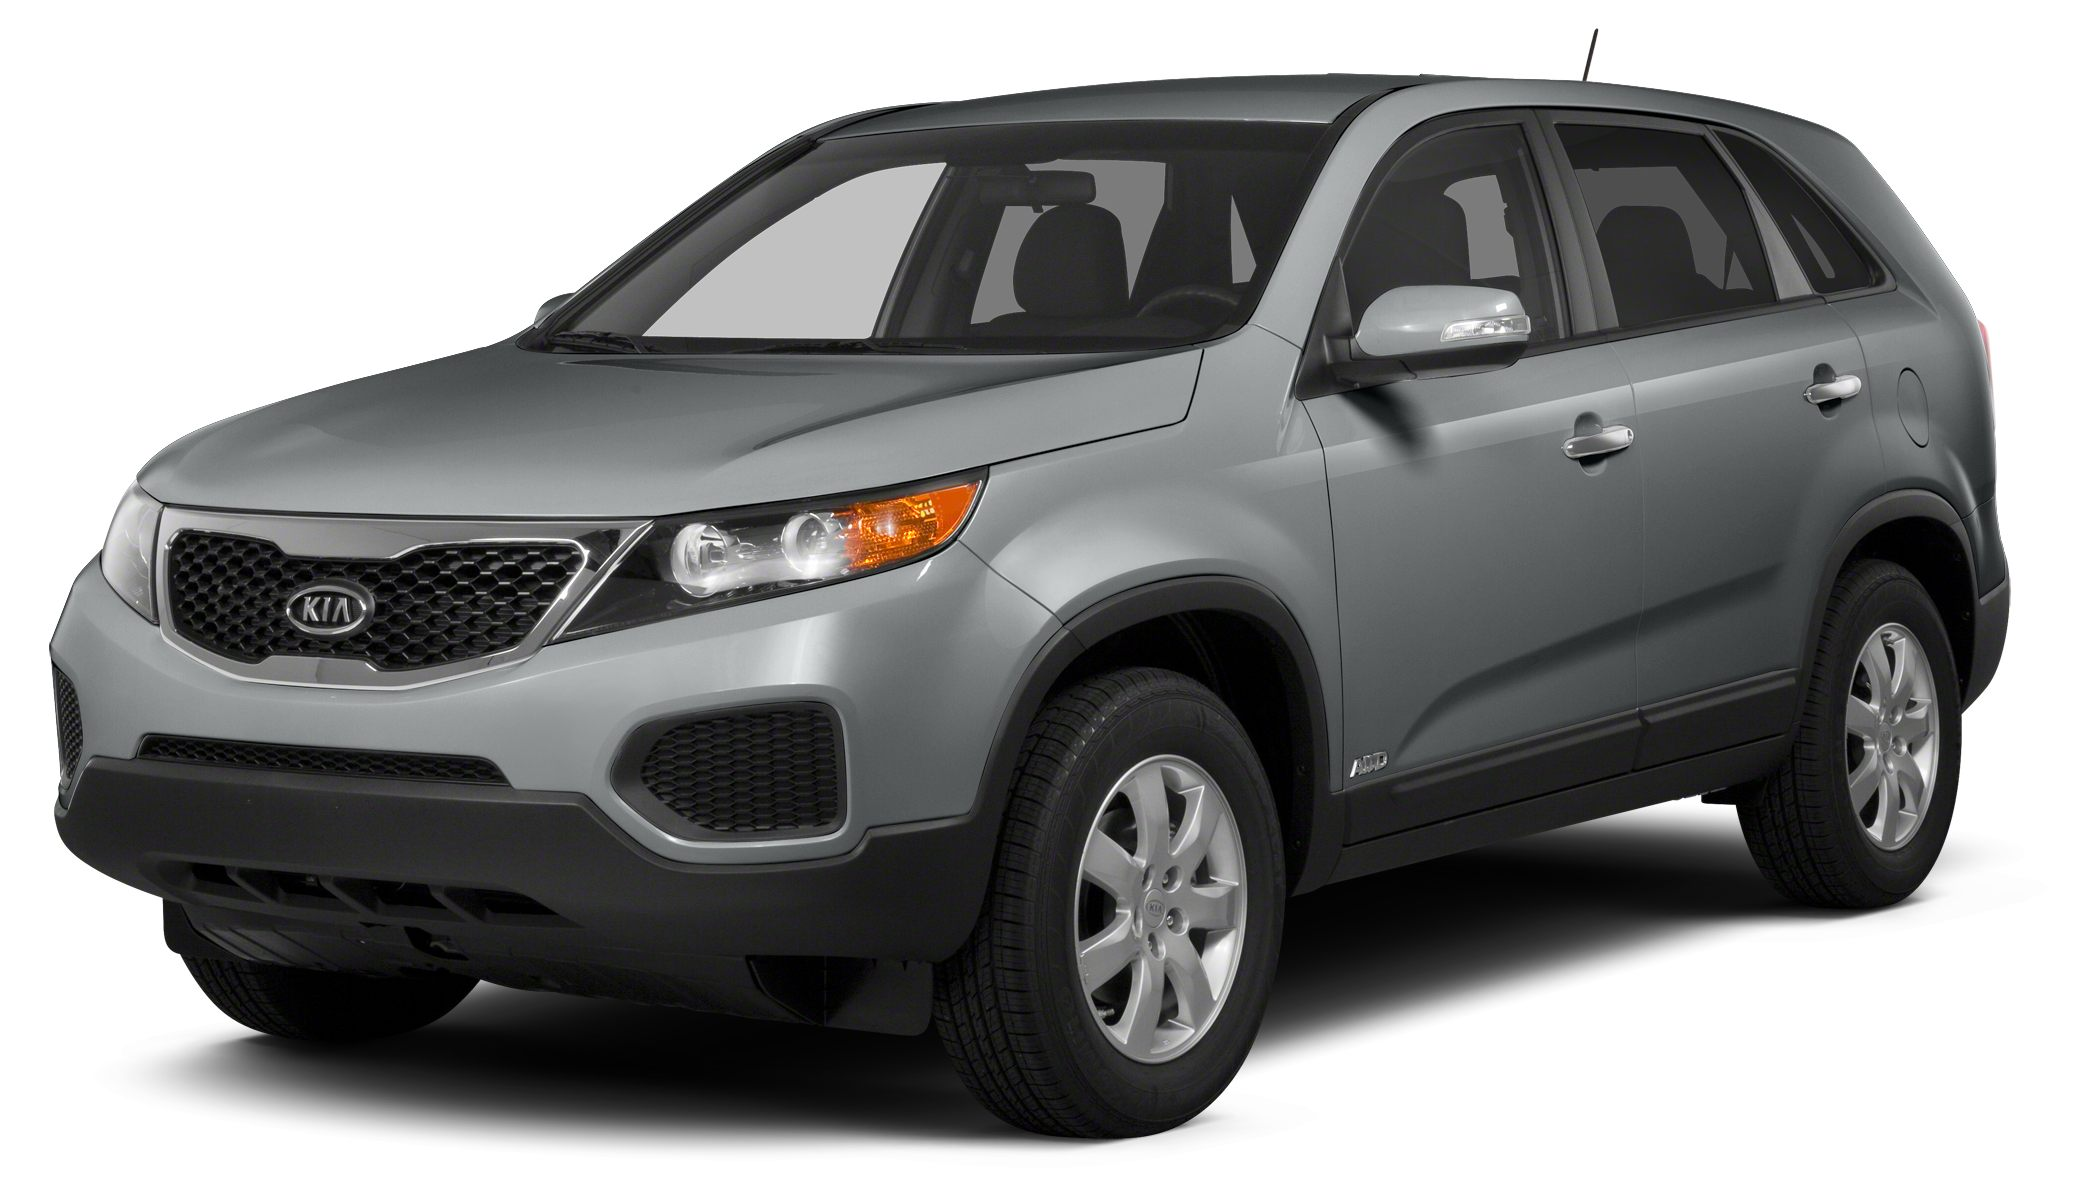 2013 Kia Sorento EX FUEL EFFICIENT 24 MPG Hwy18 MPG City PRICED TO MOVE 1000 below NADA Retai